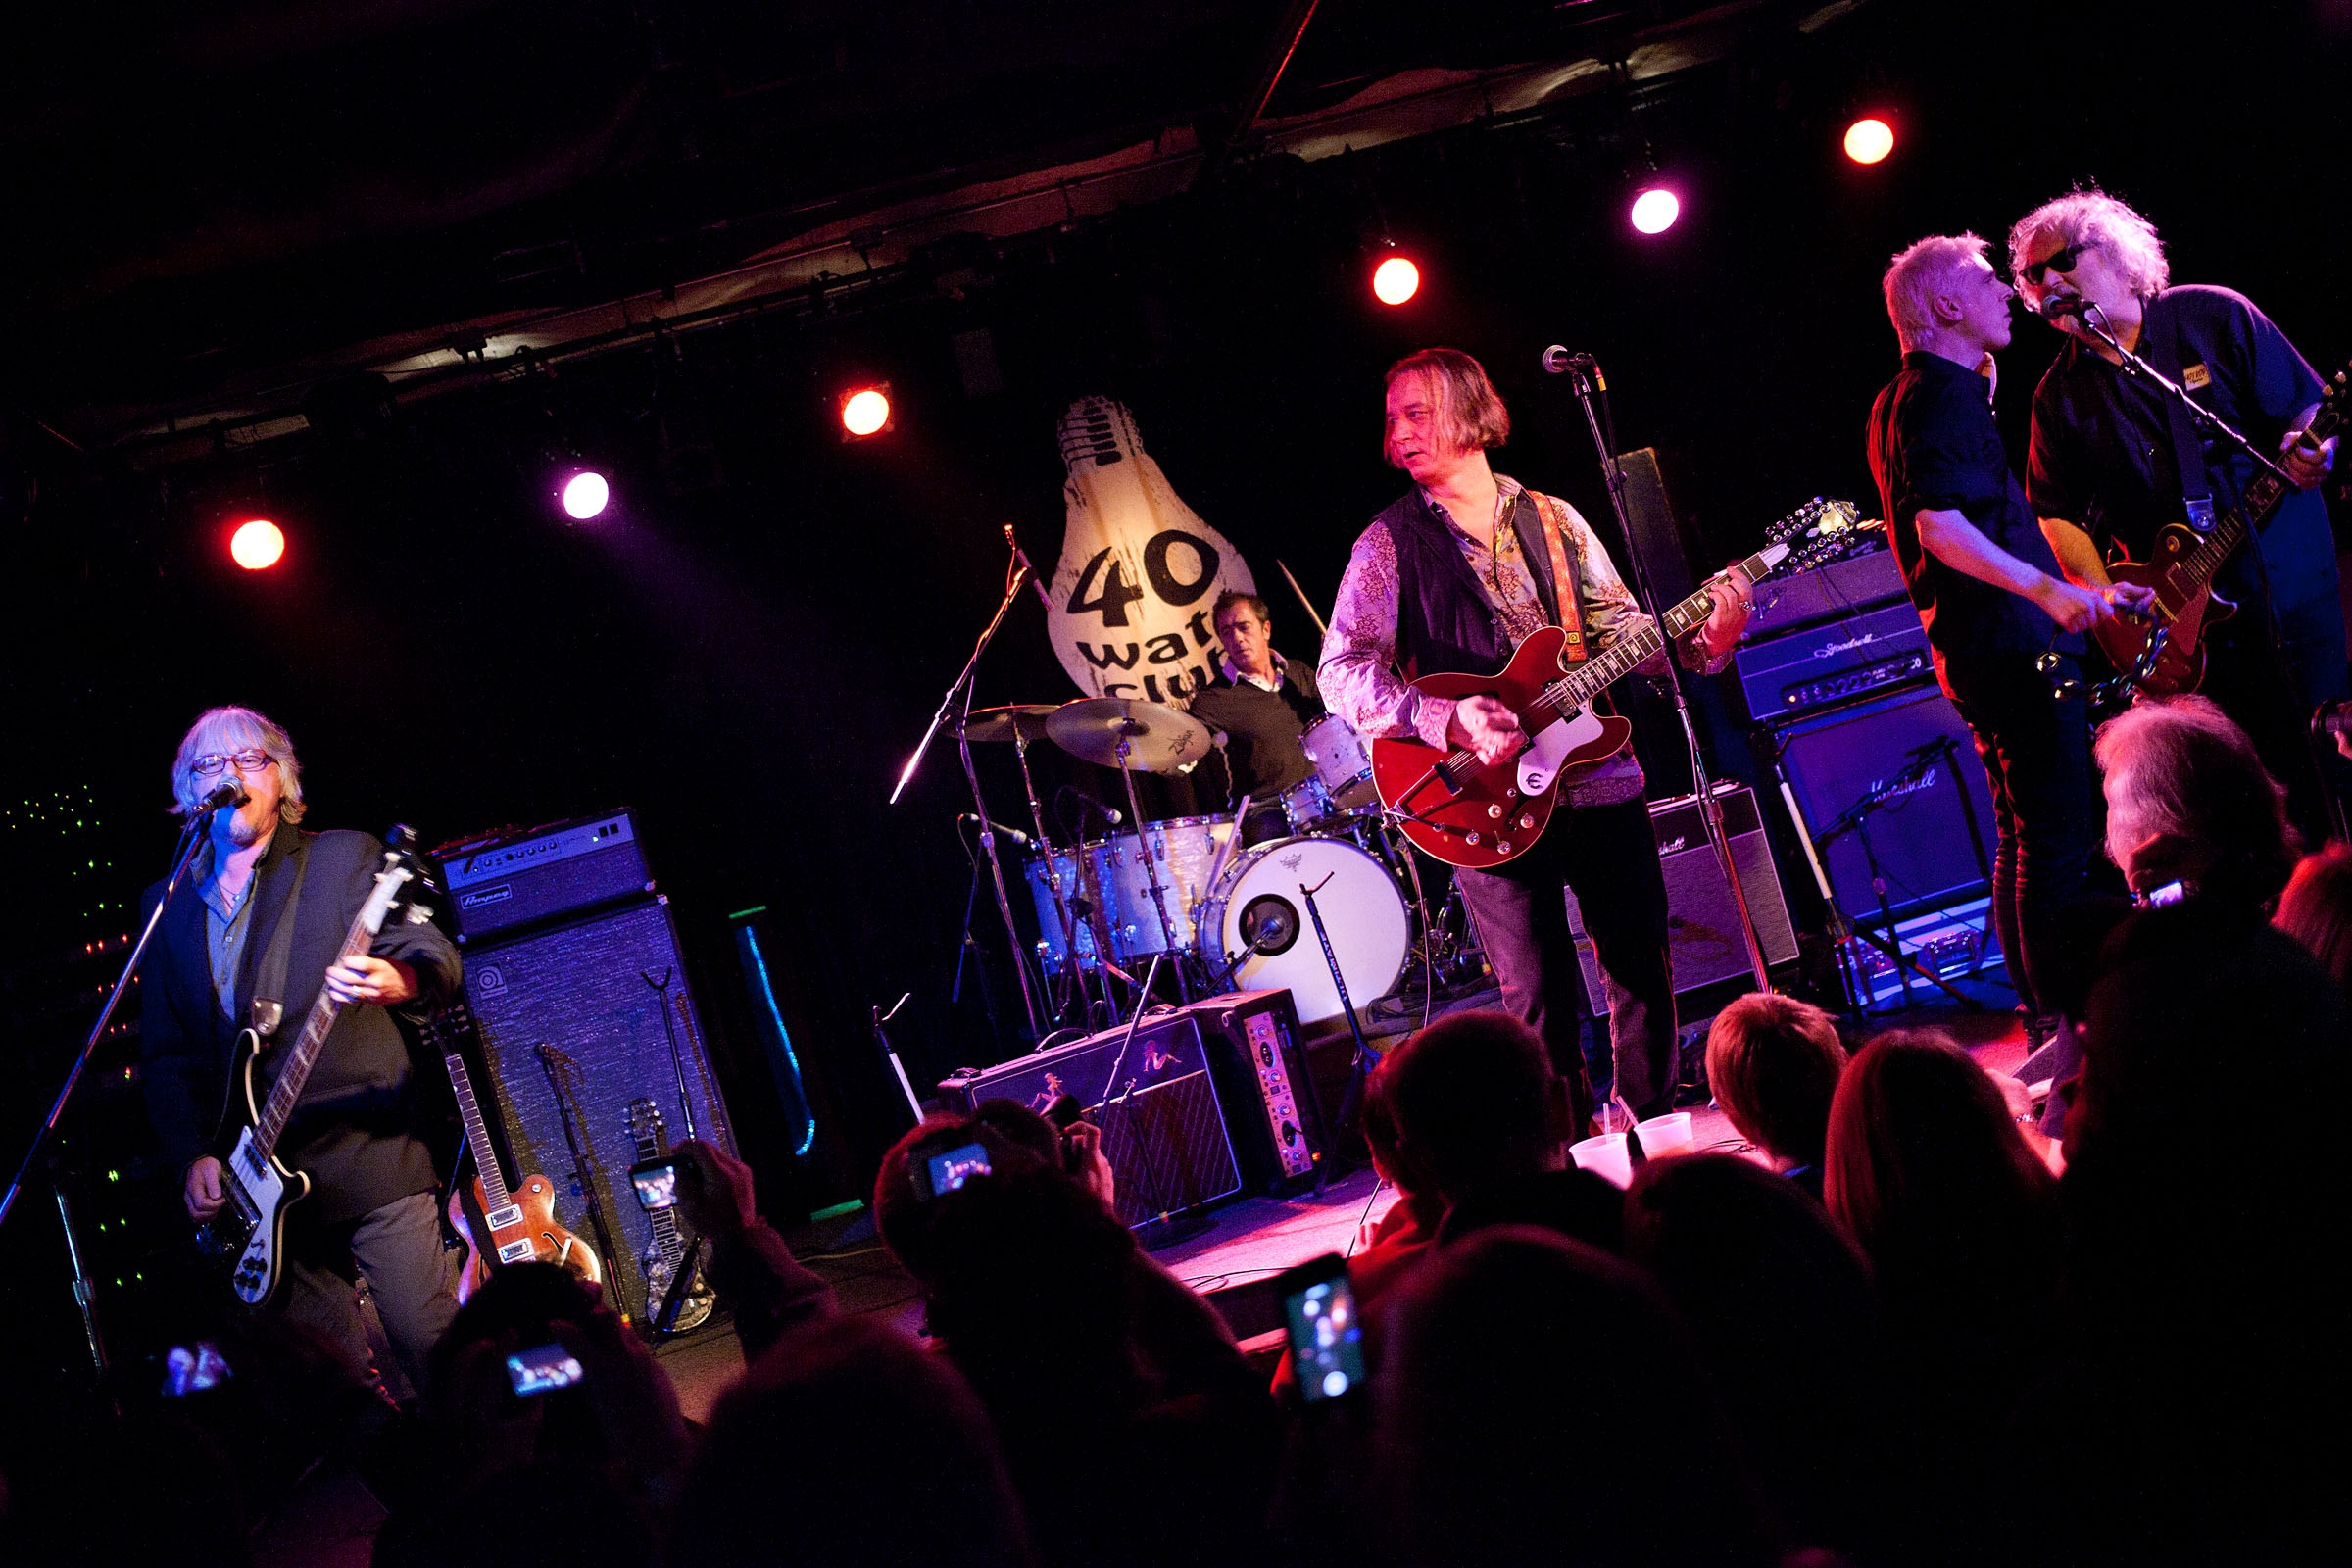 Peter Buck and friends at the 40 Watt Club in Athens